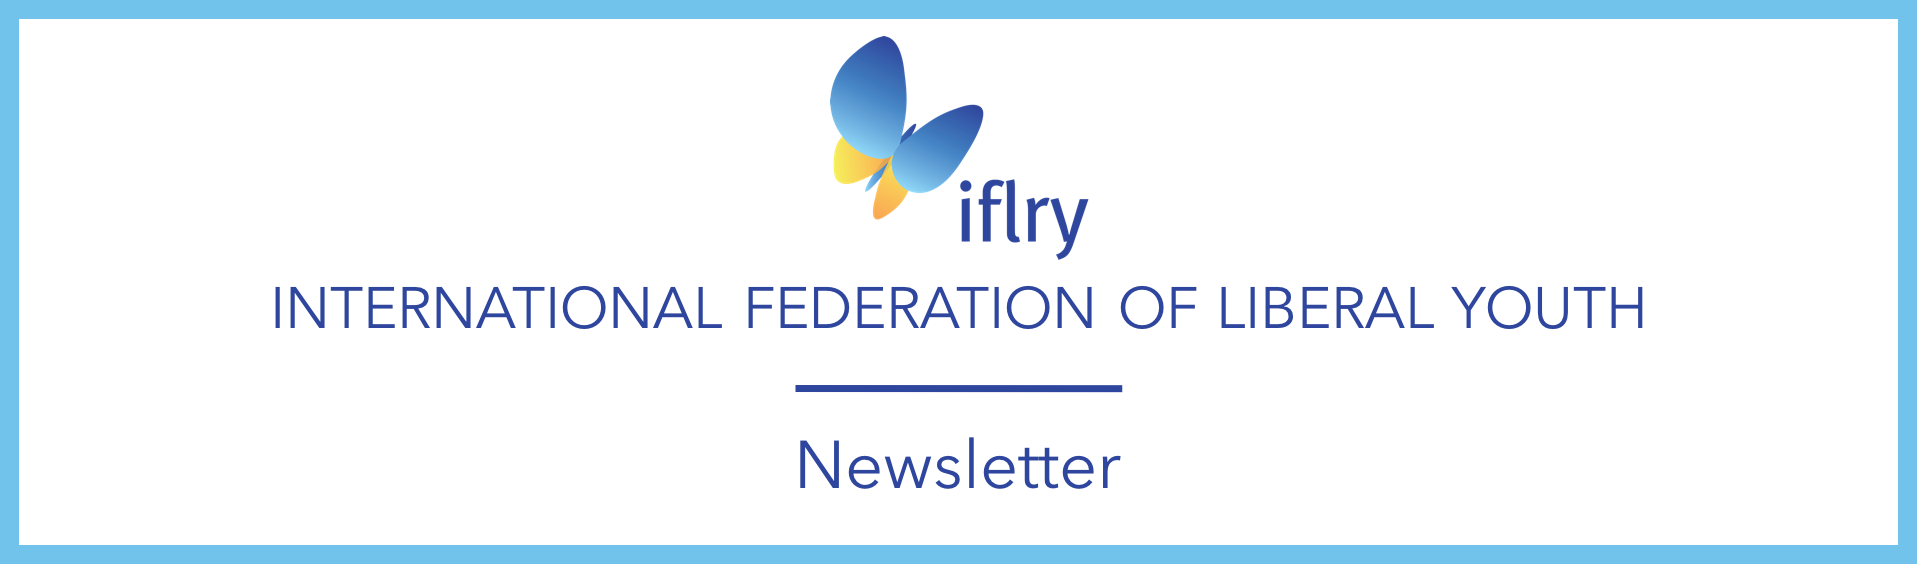 iflry_newsletter_logo